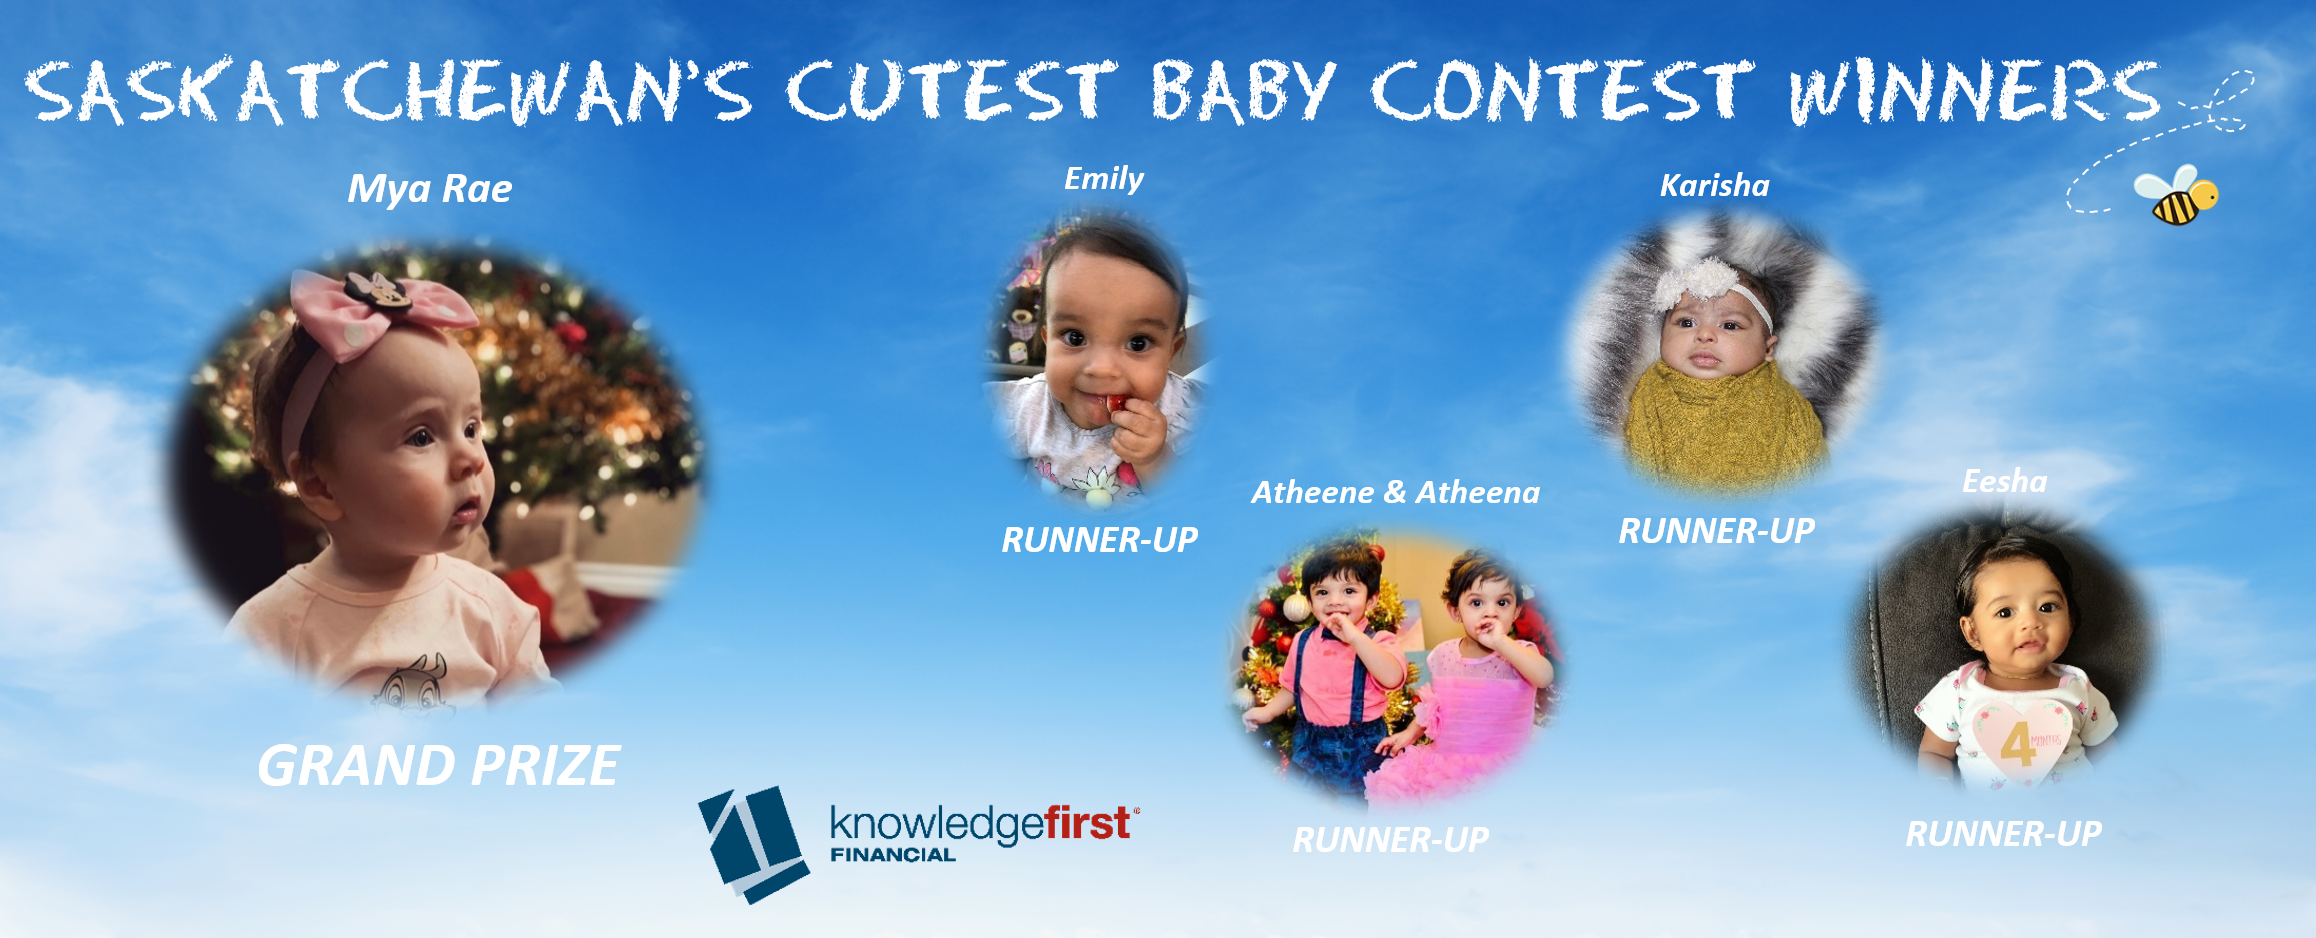 Saskatchewan's Cutest Baby Contest